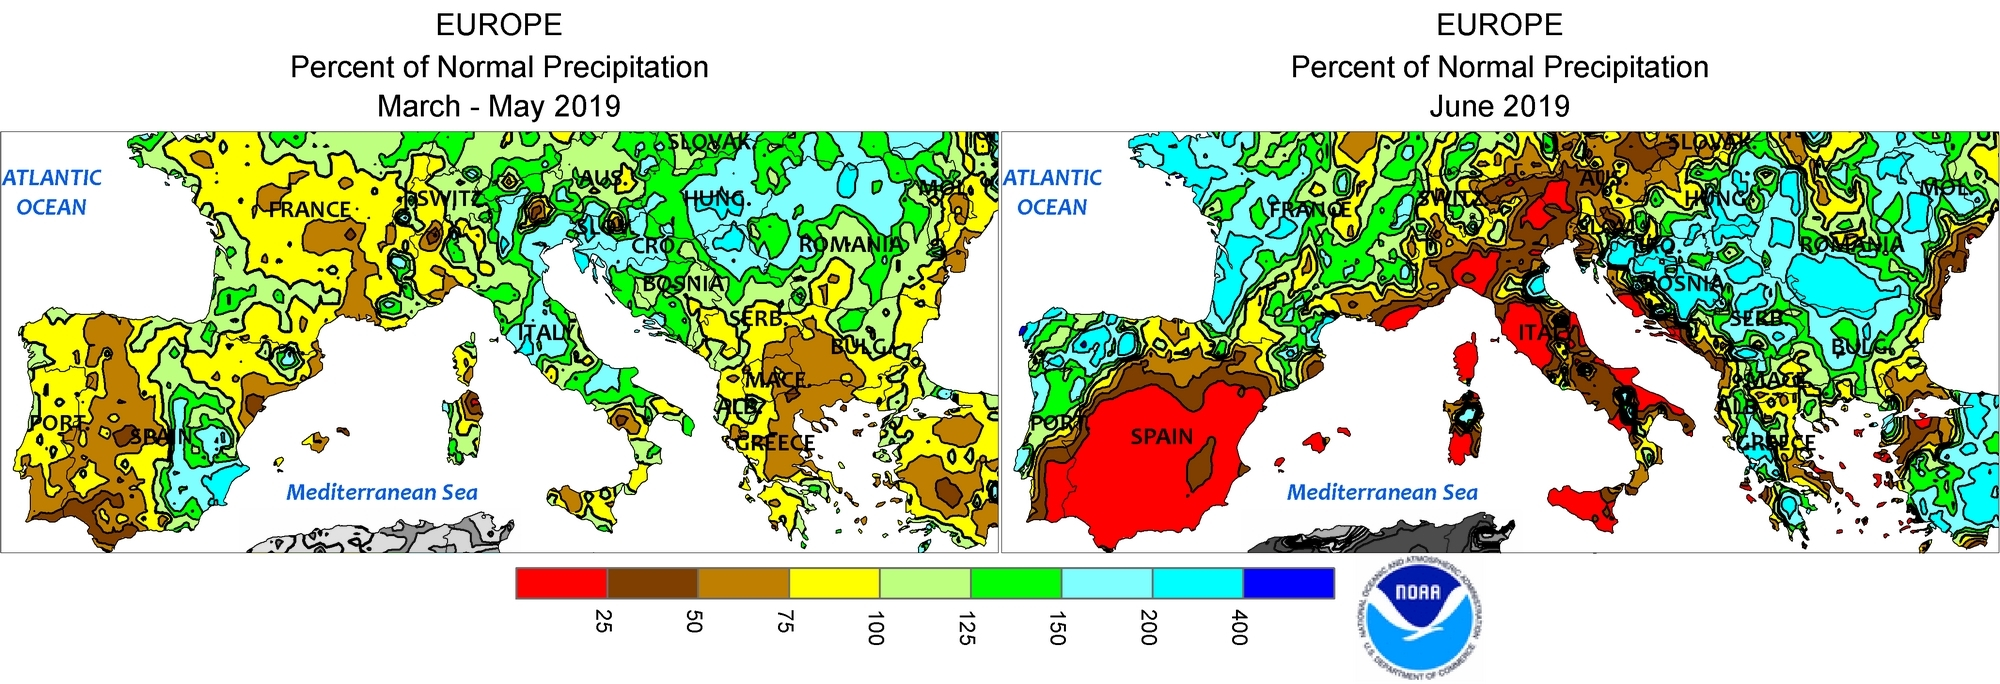 EU, Africa, China, California: Weather situation since March 2019